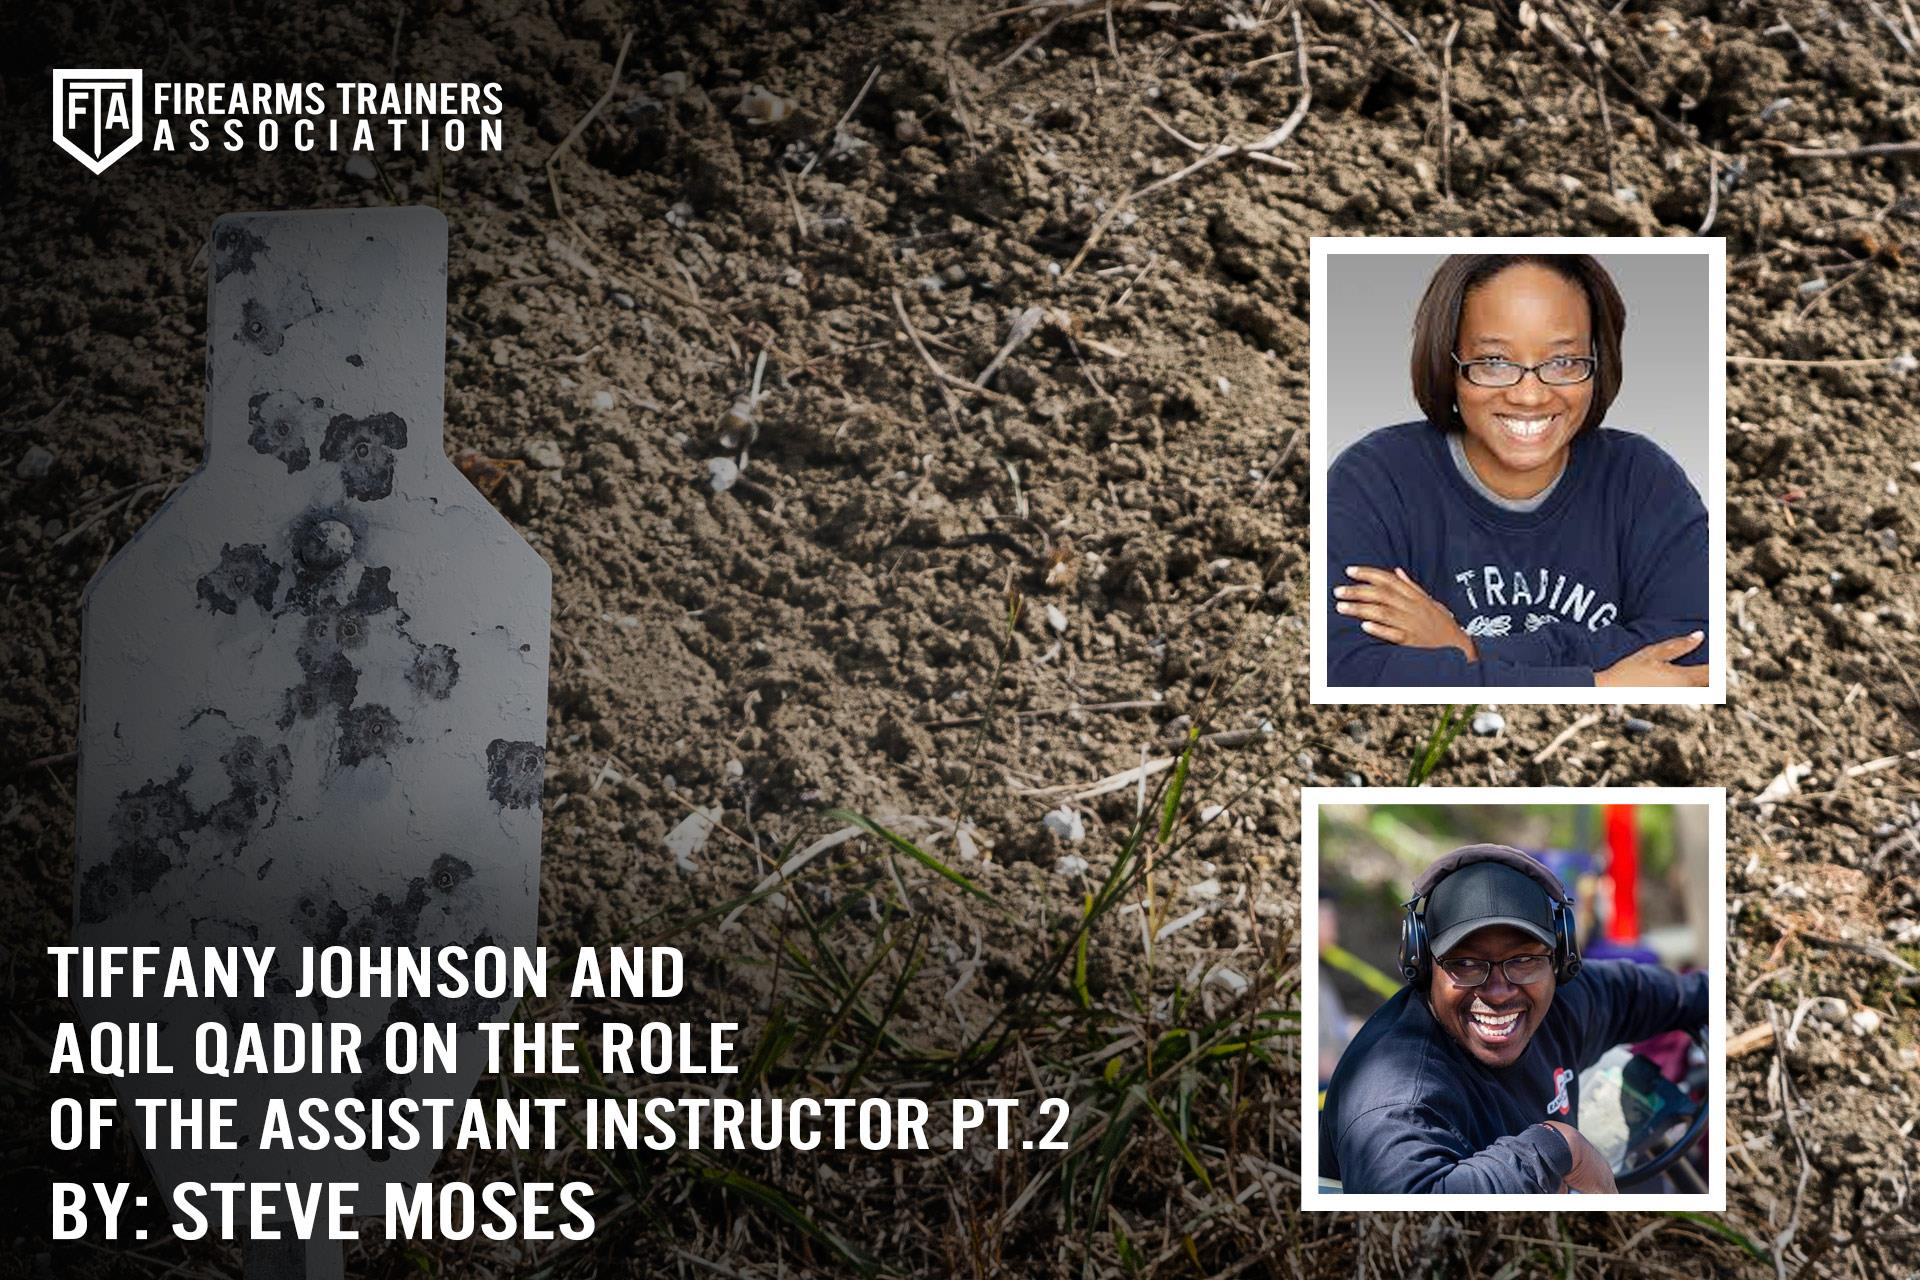 TIFFANY JOHNSON AND AQIL QADIR ON THE ROLE OF THE ASSISTANT INSTRUCTOR PT. 2